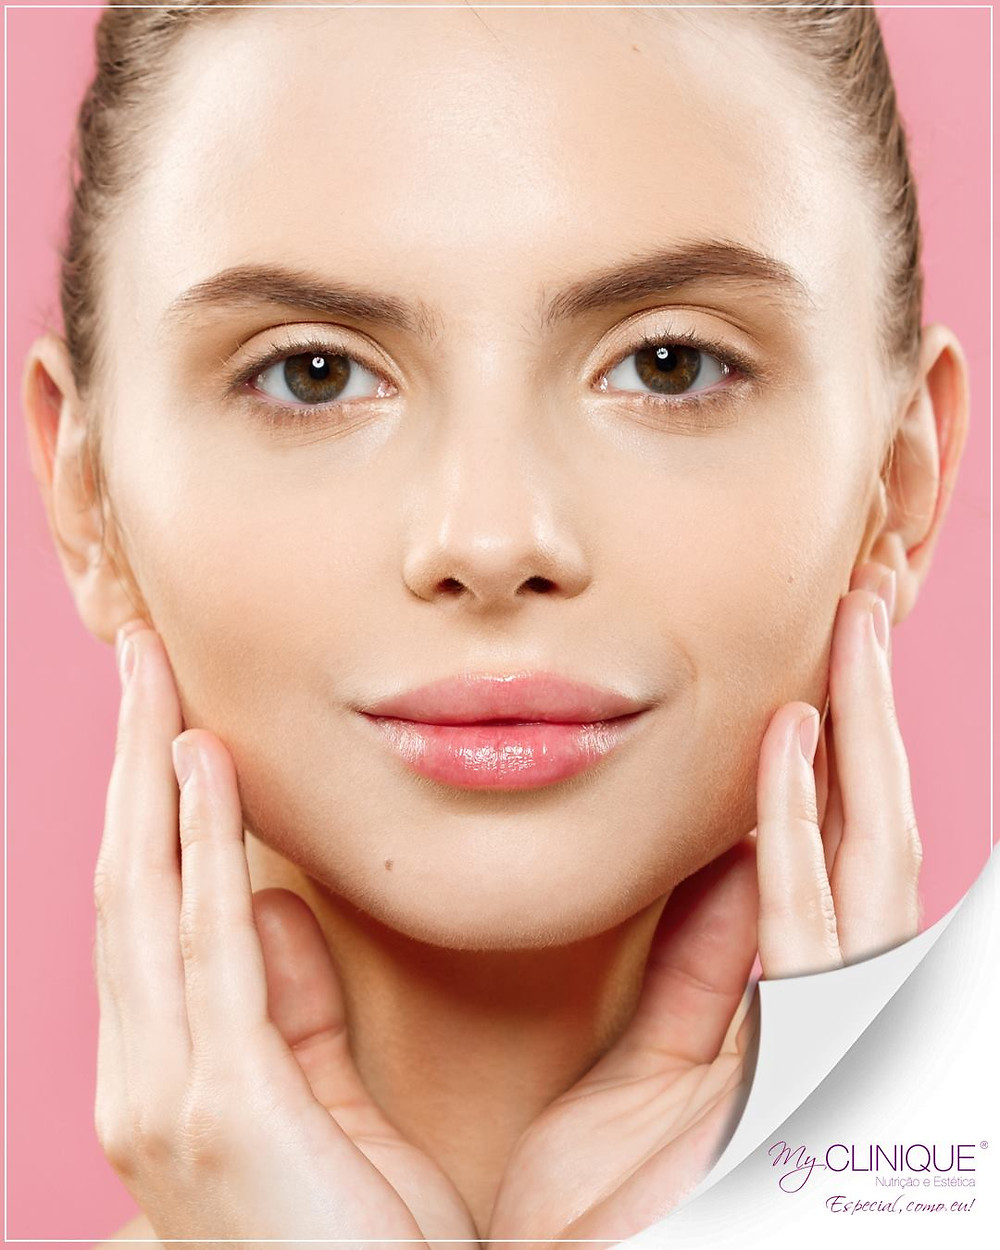 myclinique restylane